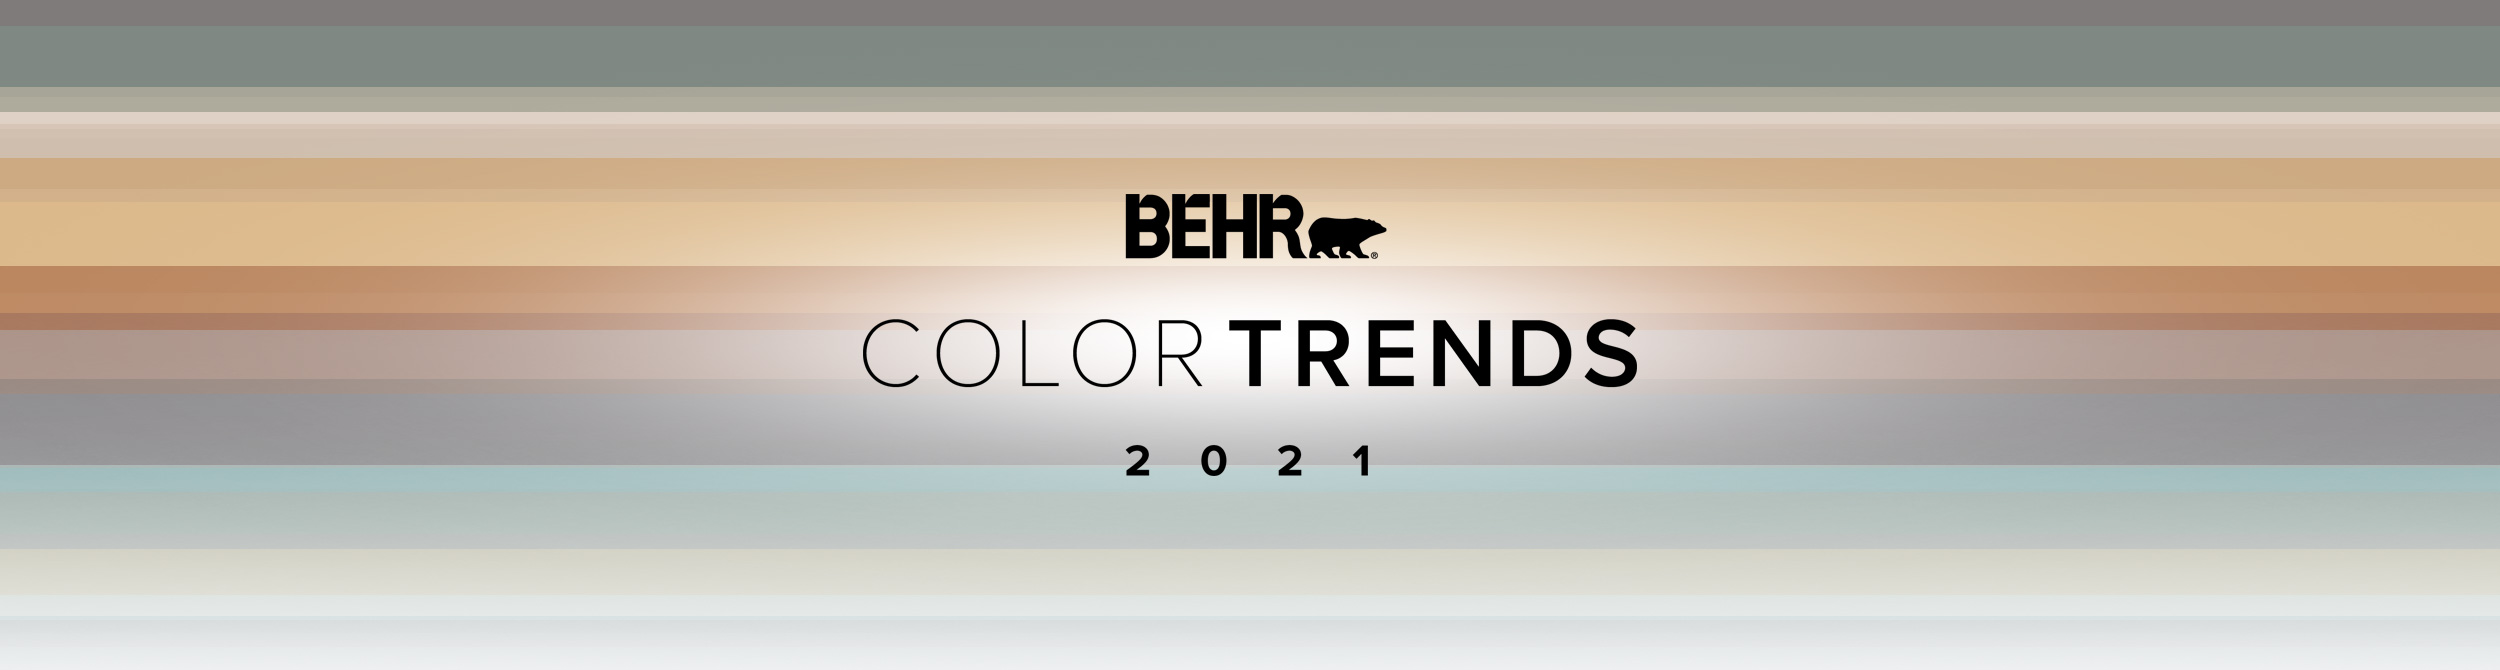 Banner image representing the Behr 2021 Color Trends forecast. Includes color bands of each of the 2021 trend colors, the Color Trends logo lockup, and the Behr logo